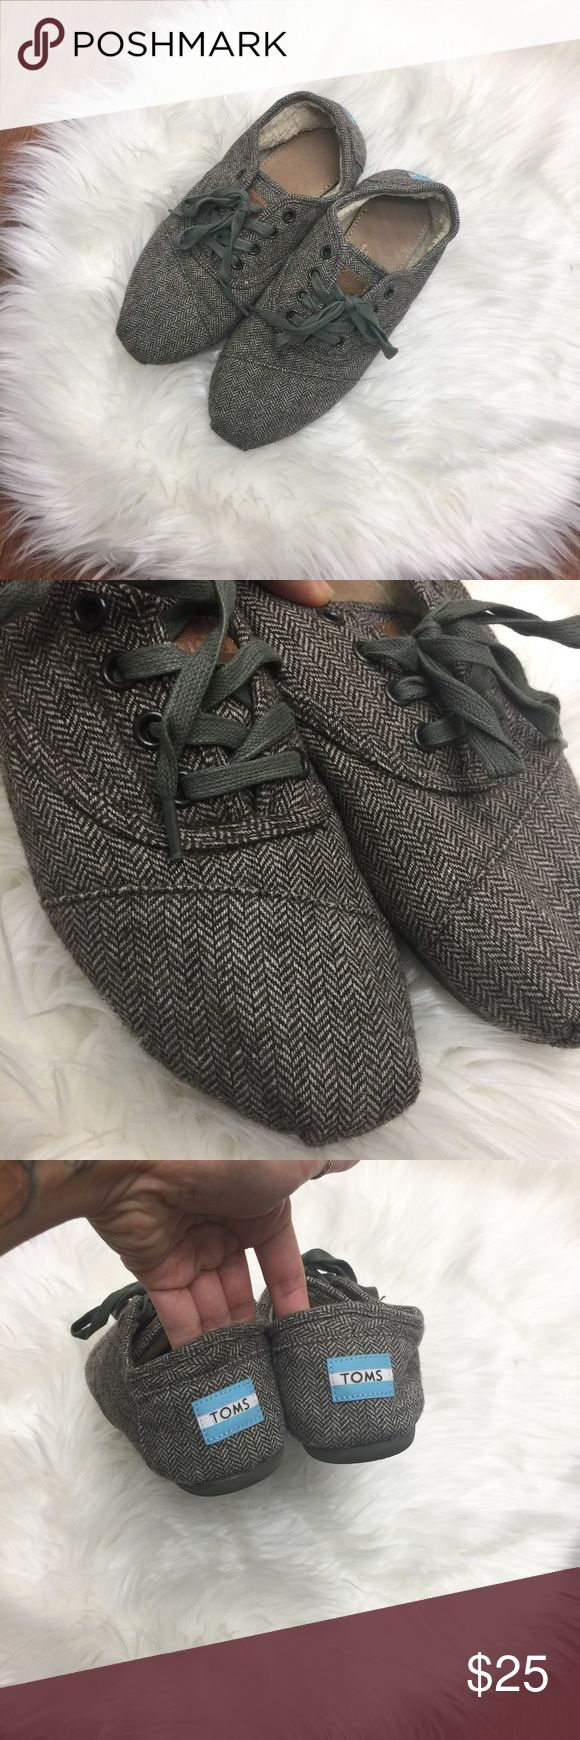 TOMS Chevron Woolen Sneakers Worn only 2x. In excellent condition. No rips or tears. TOMS Shoes